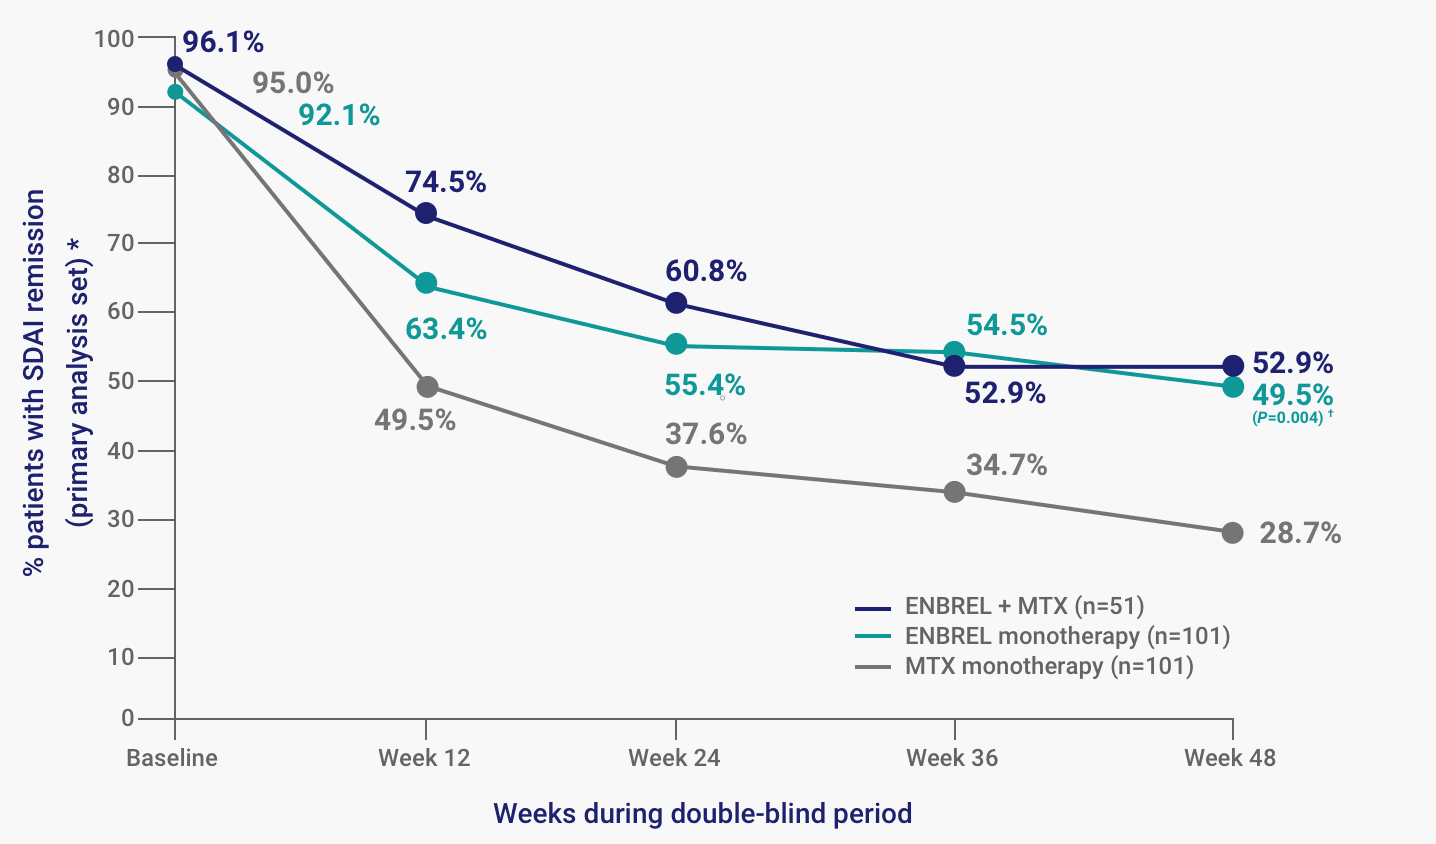 The percent of patients with SDAI remission at Week 48 of the SEAM-RA study was 52.9% for ENBREL plus MTX combination therapy, 49.5% for ENBREL monotherapy, and 28.7% for MTX monotherapy